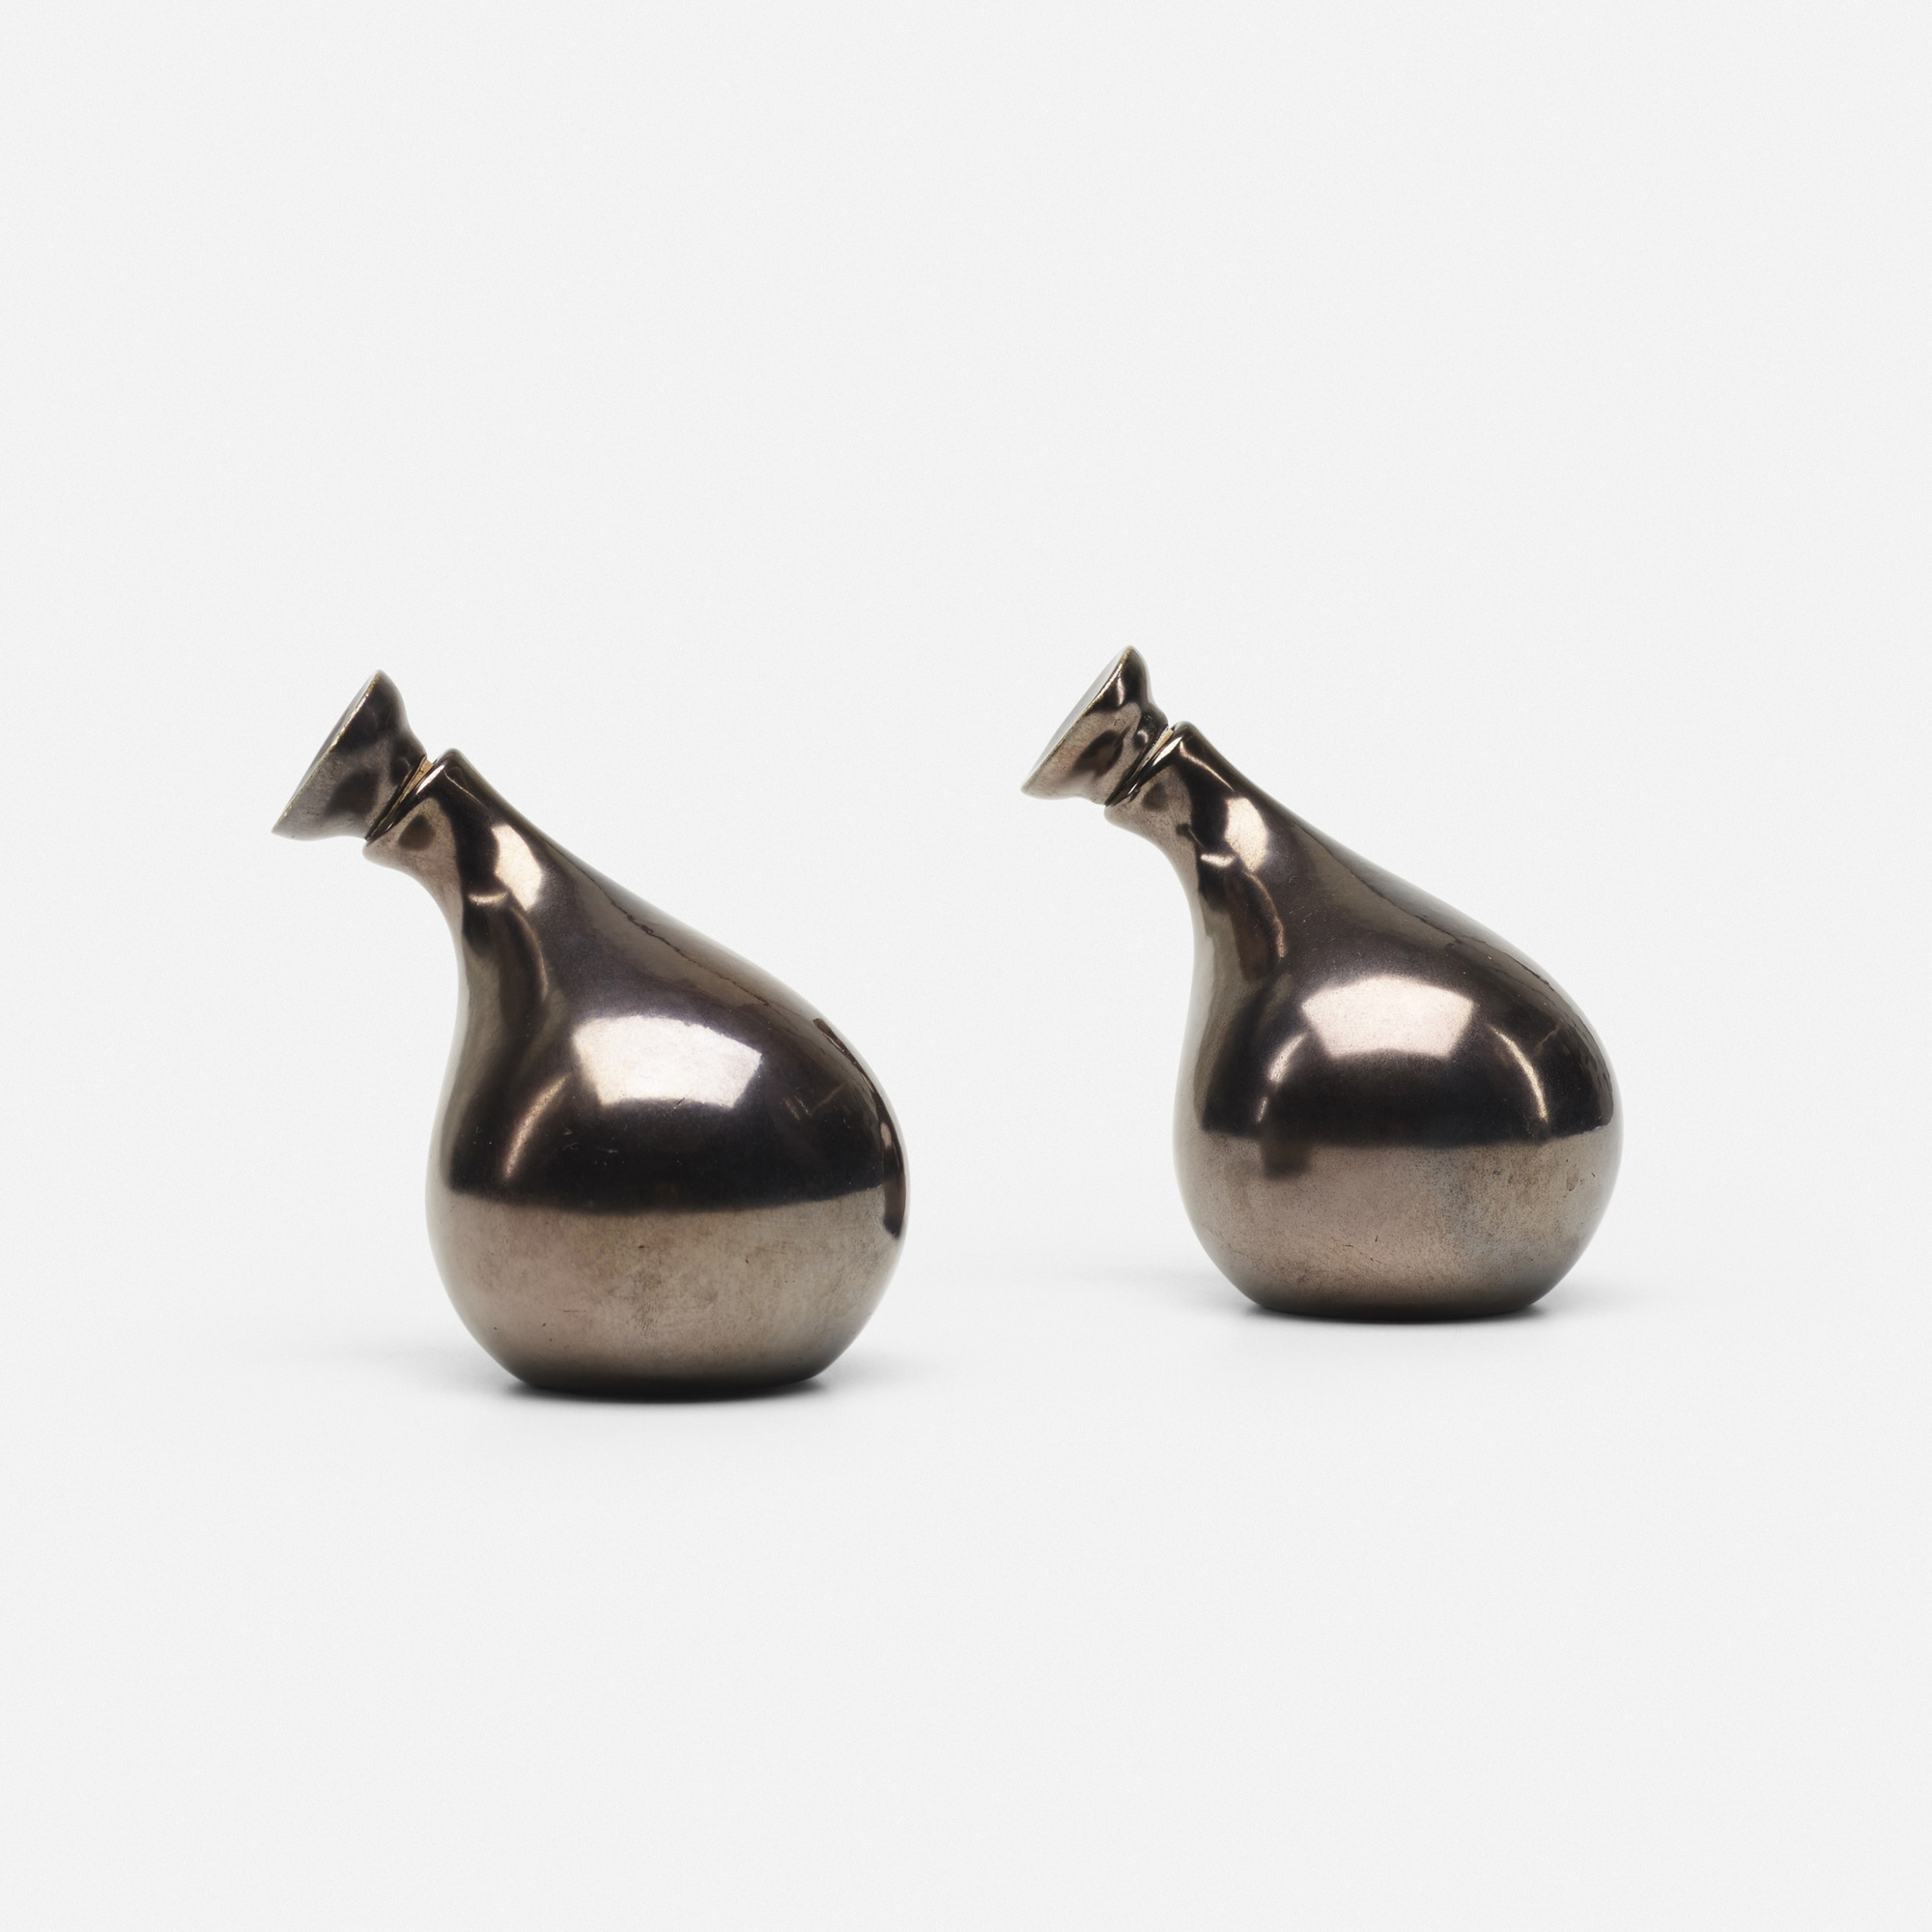 816: Eva Zeisel / Town and Country cruets, pair (1 of 1)